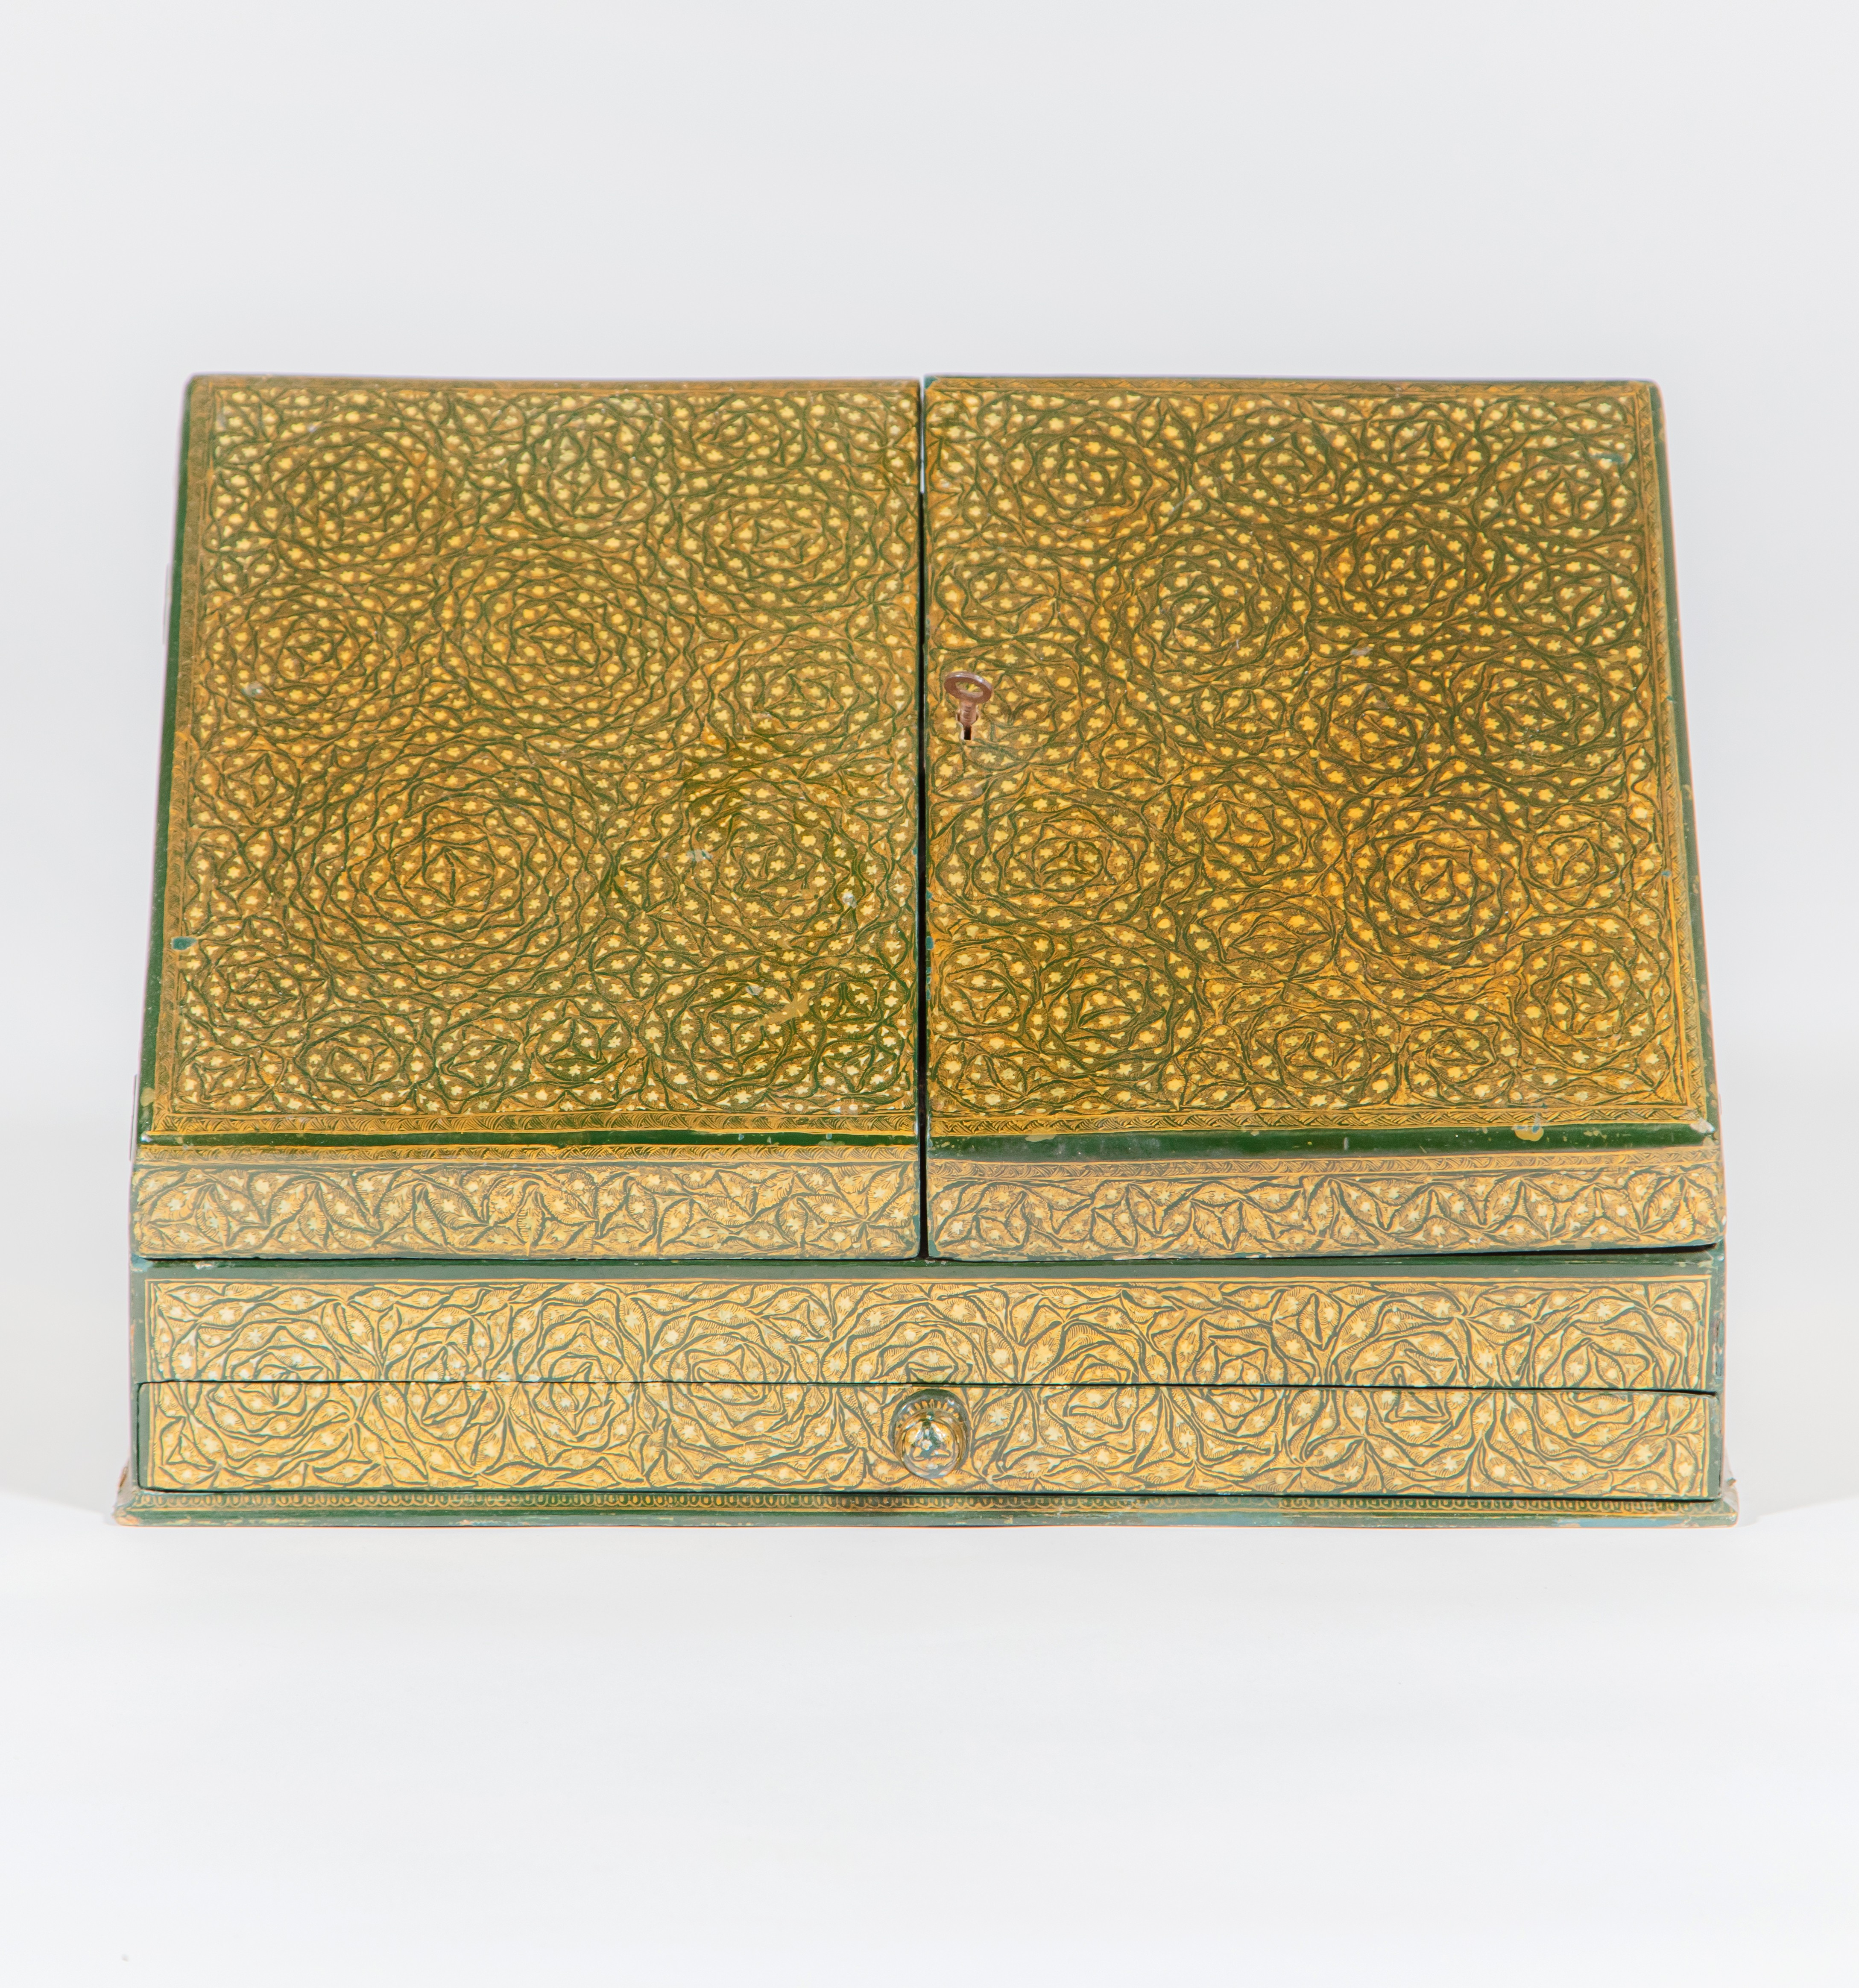 A Kashmiri green ground and gold decorated writing slope, Circa 1870